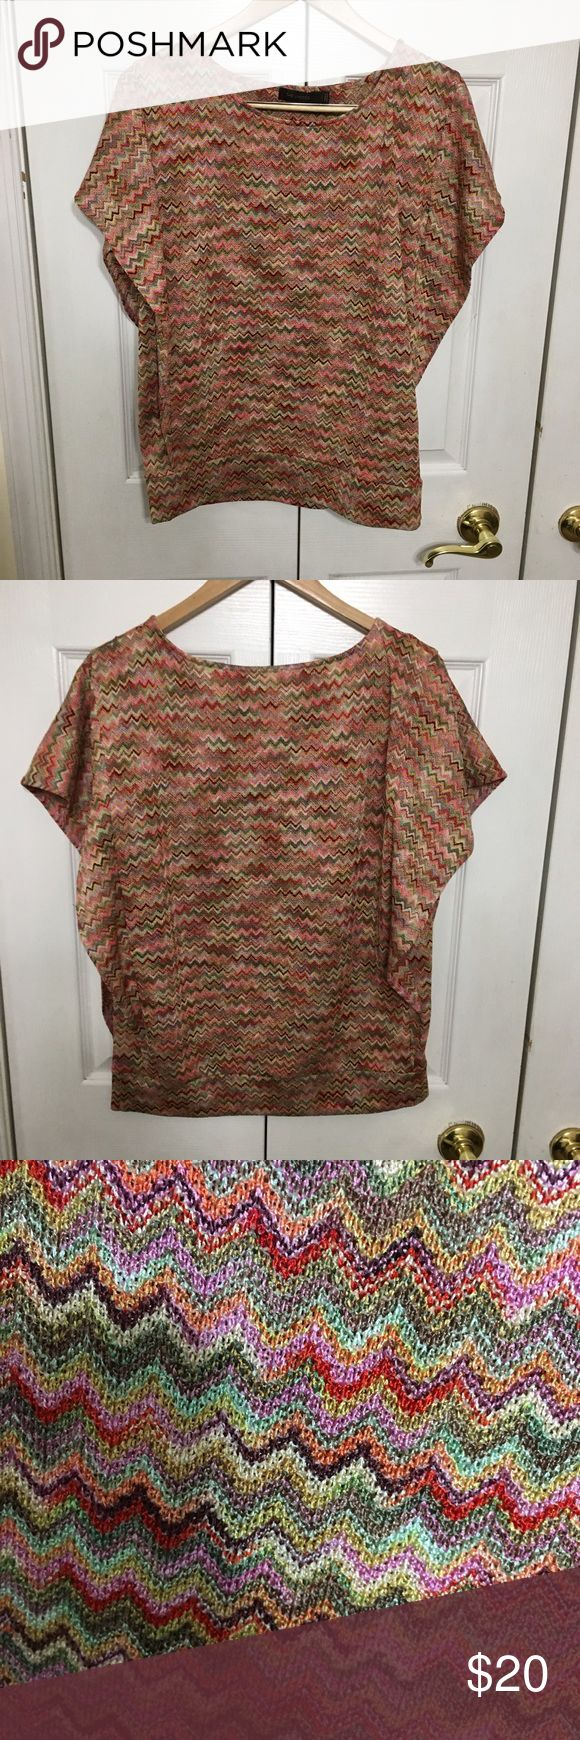 The Limited Multicolored chevron top So colorful! This multicolored chevron top has a banded waist and flutter sleeves. Excellent preowned condition. No stains, rips, holes. The Limited Tops Blouses